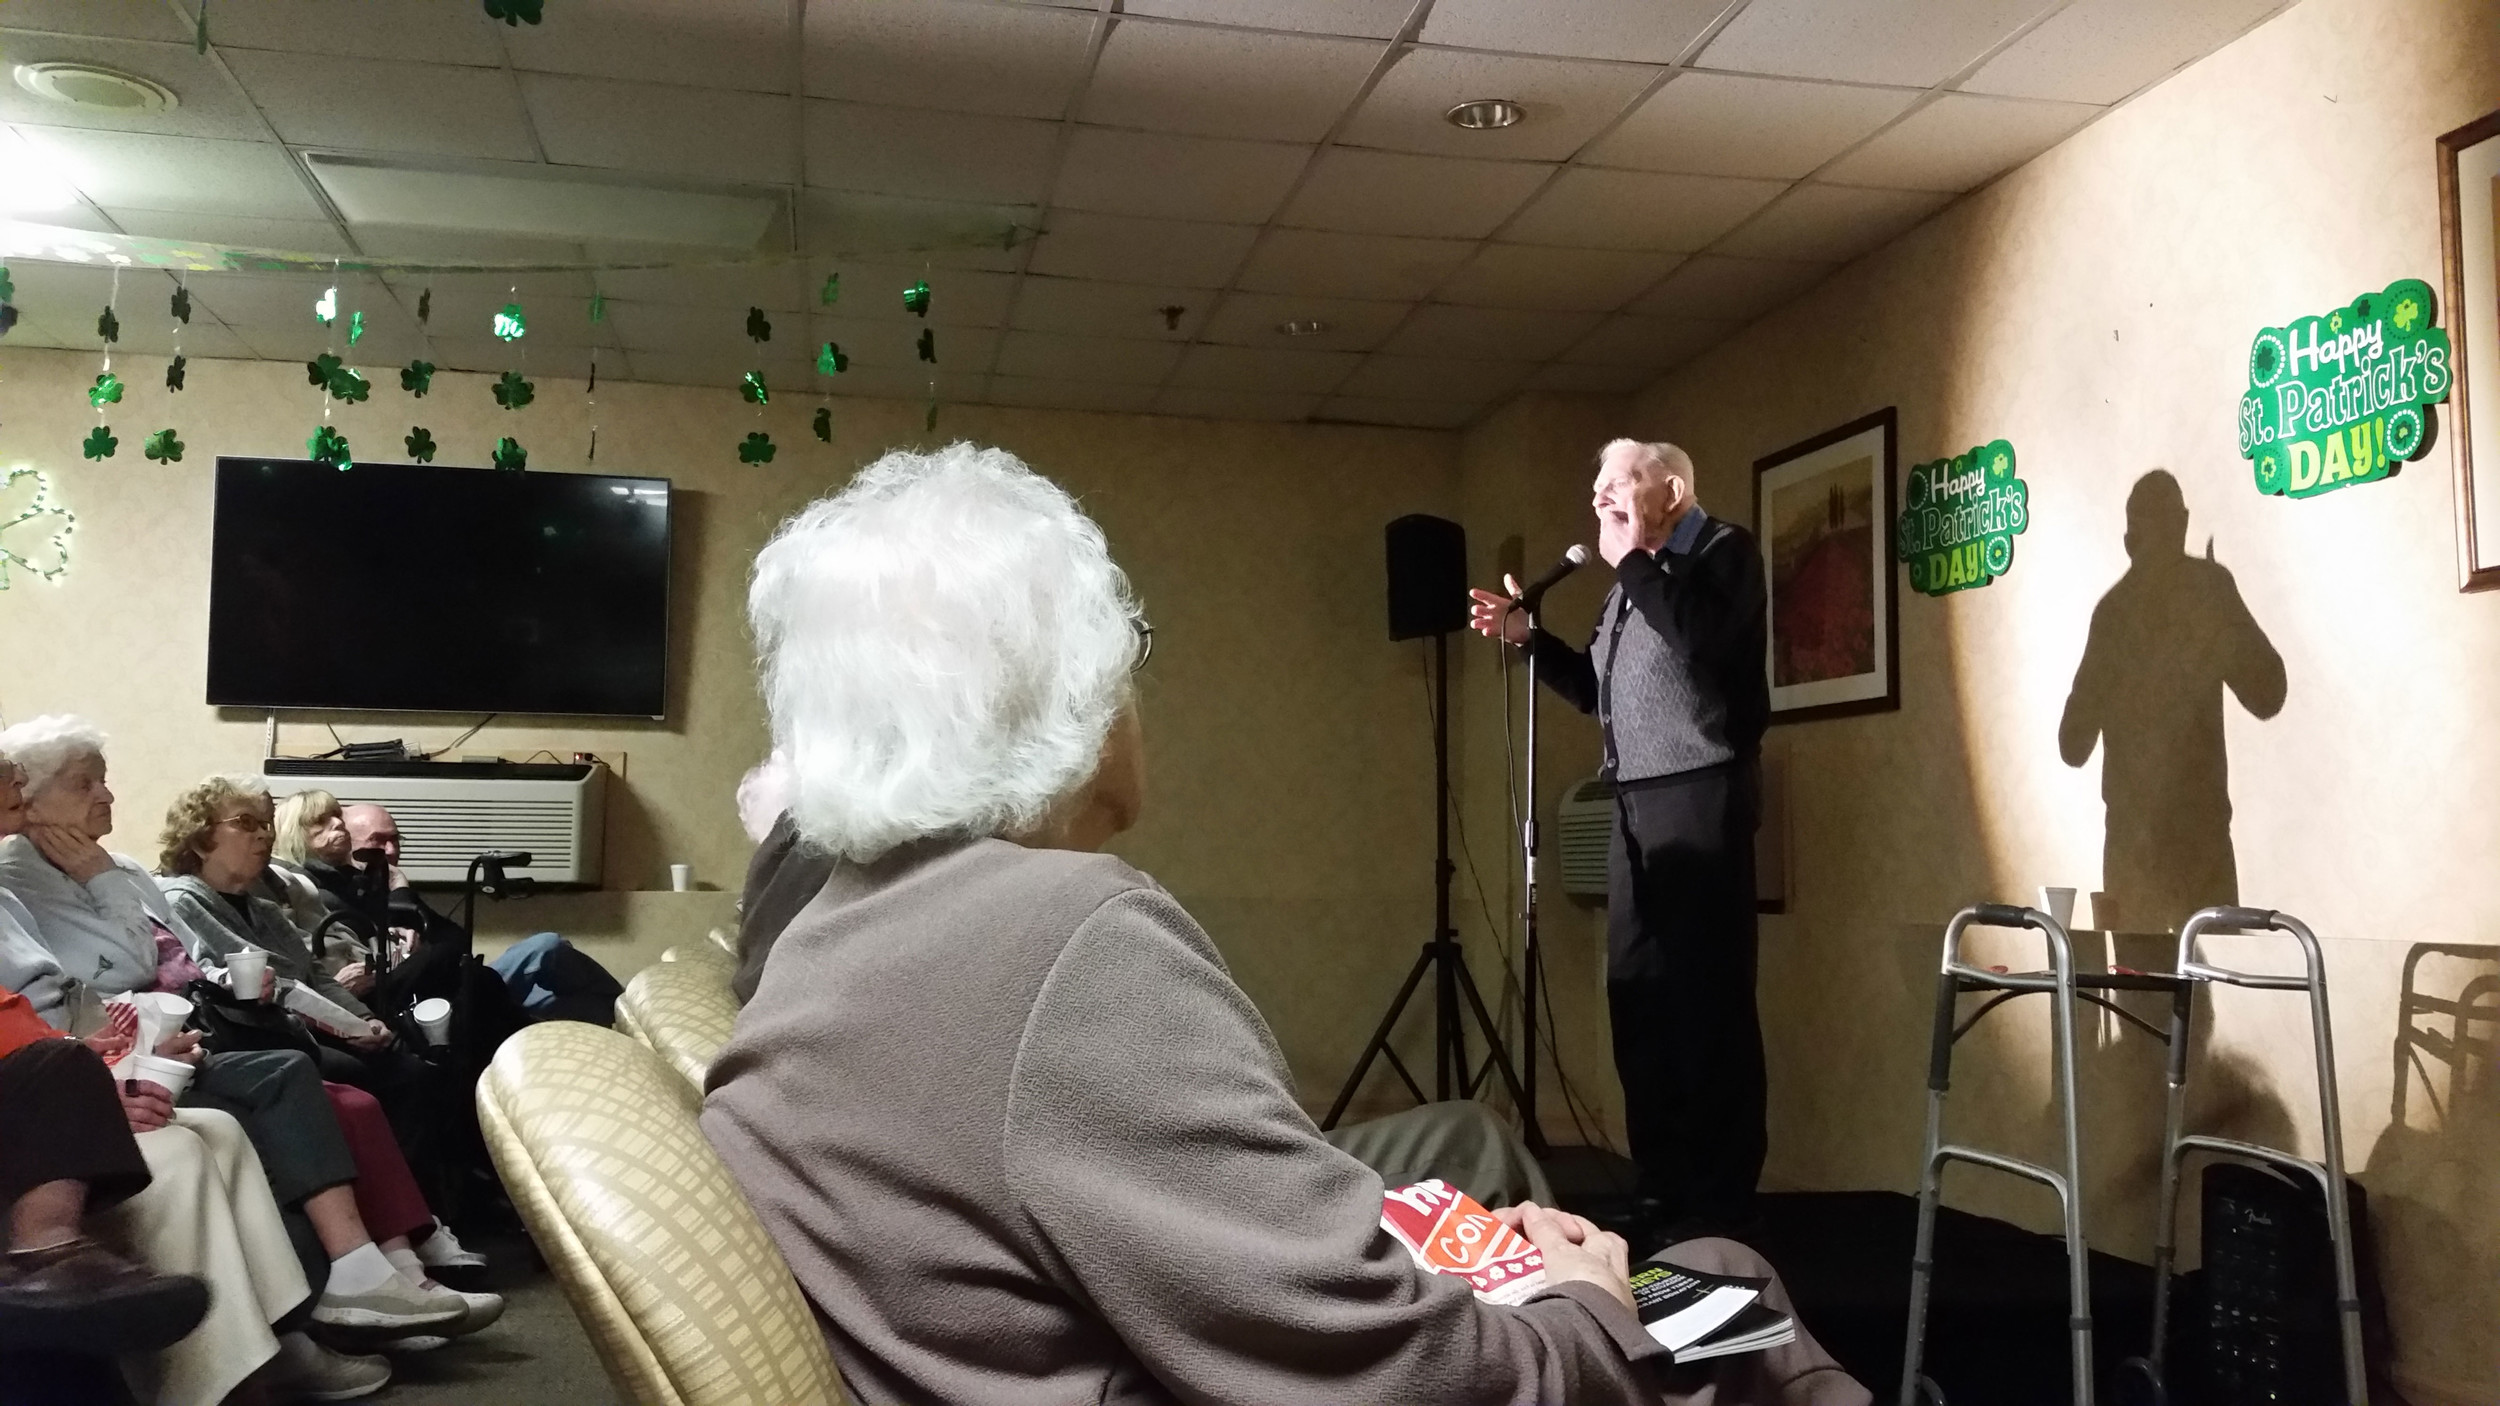 Fred Mueller, right, has performed as a comedian for 12 years and he was delighted when he was given the opportunity to perform in front of his peers at The Regency Assisted Living.